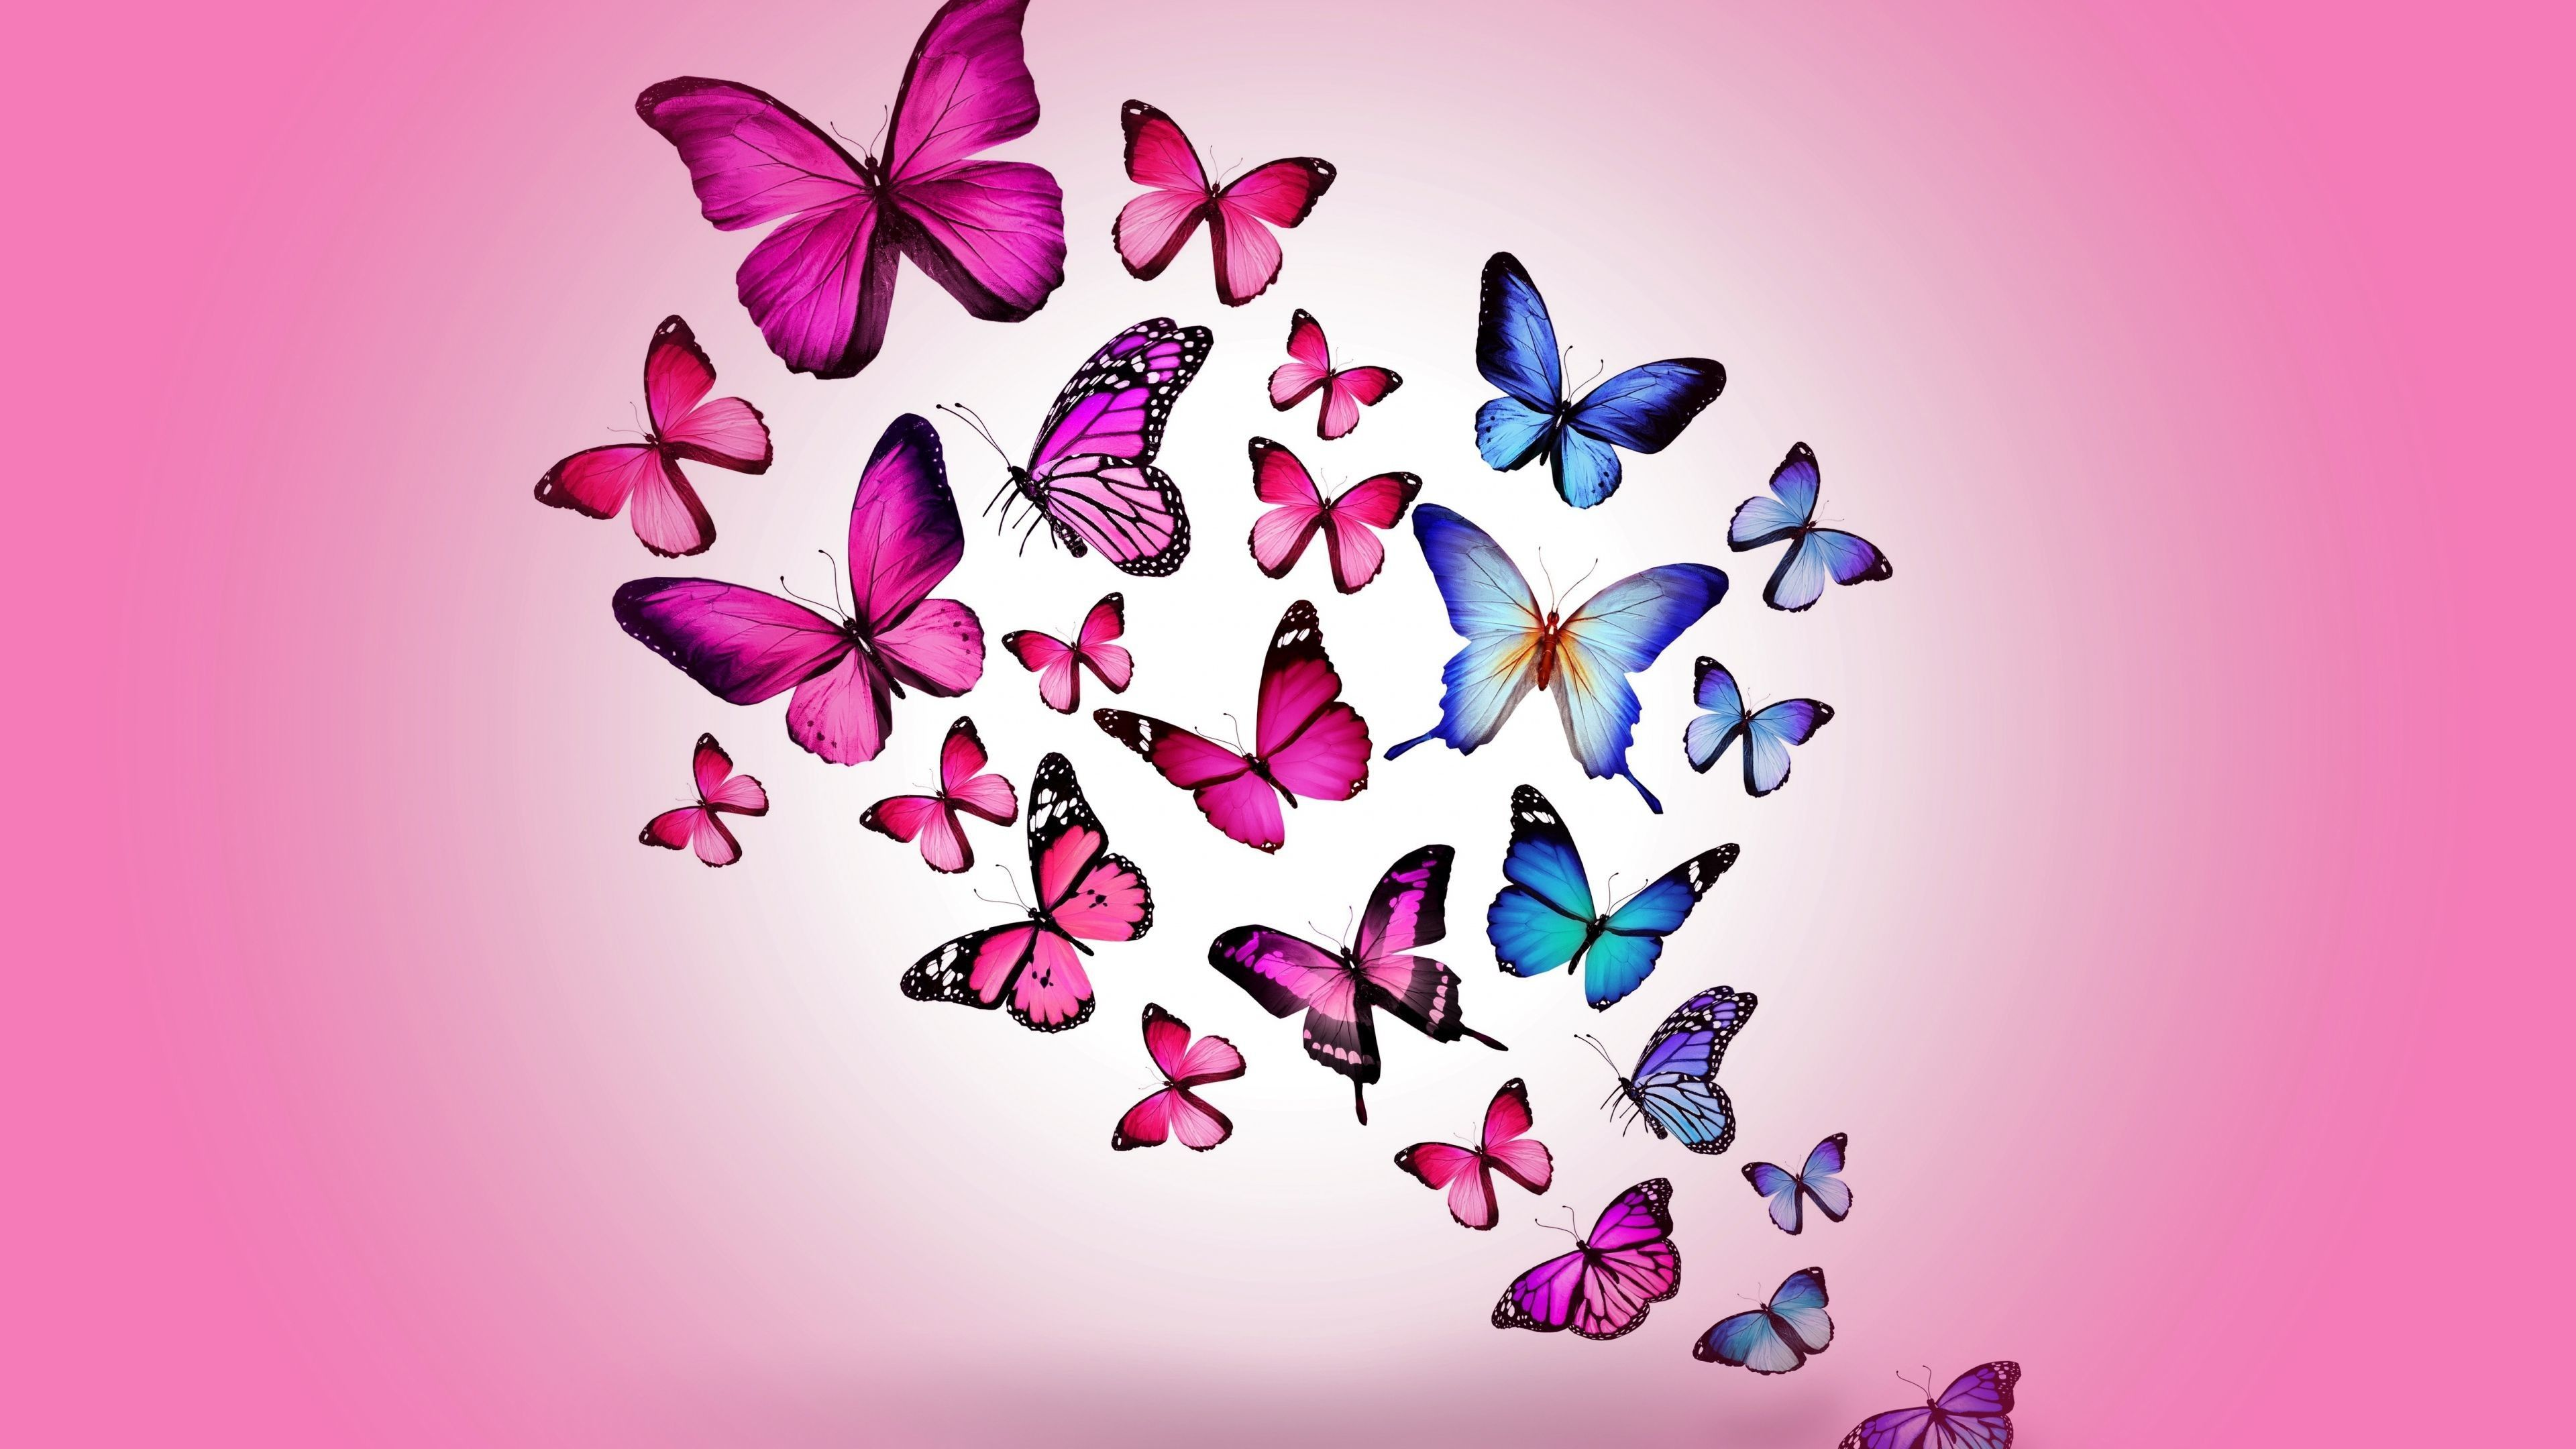 Aesthetic Butterflies Wallpapers Wallpaper Cave